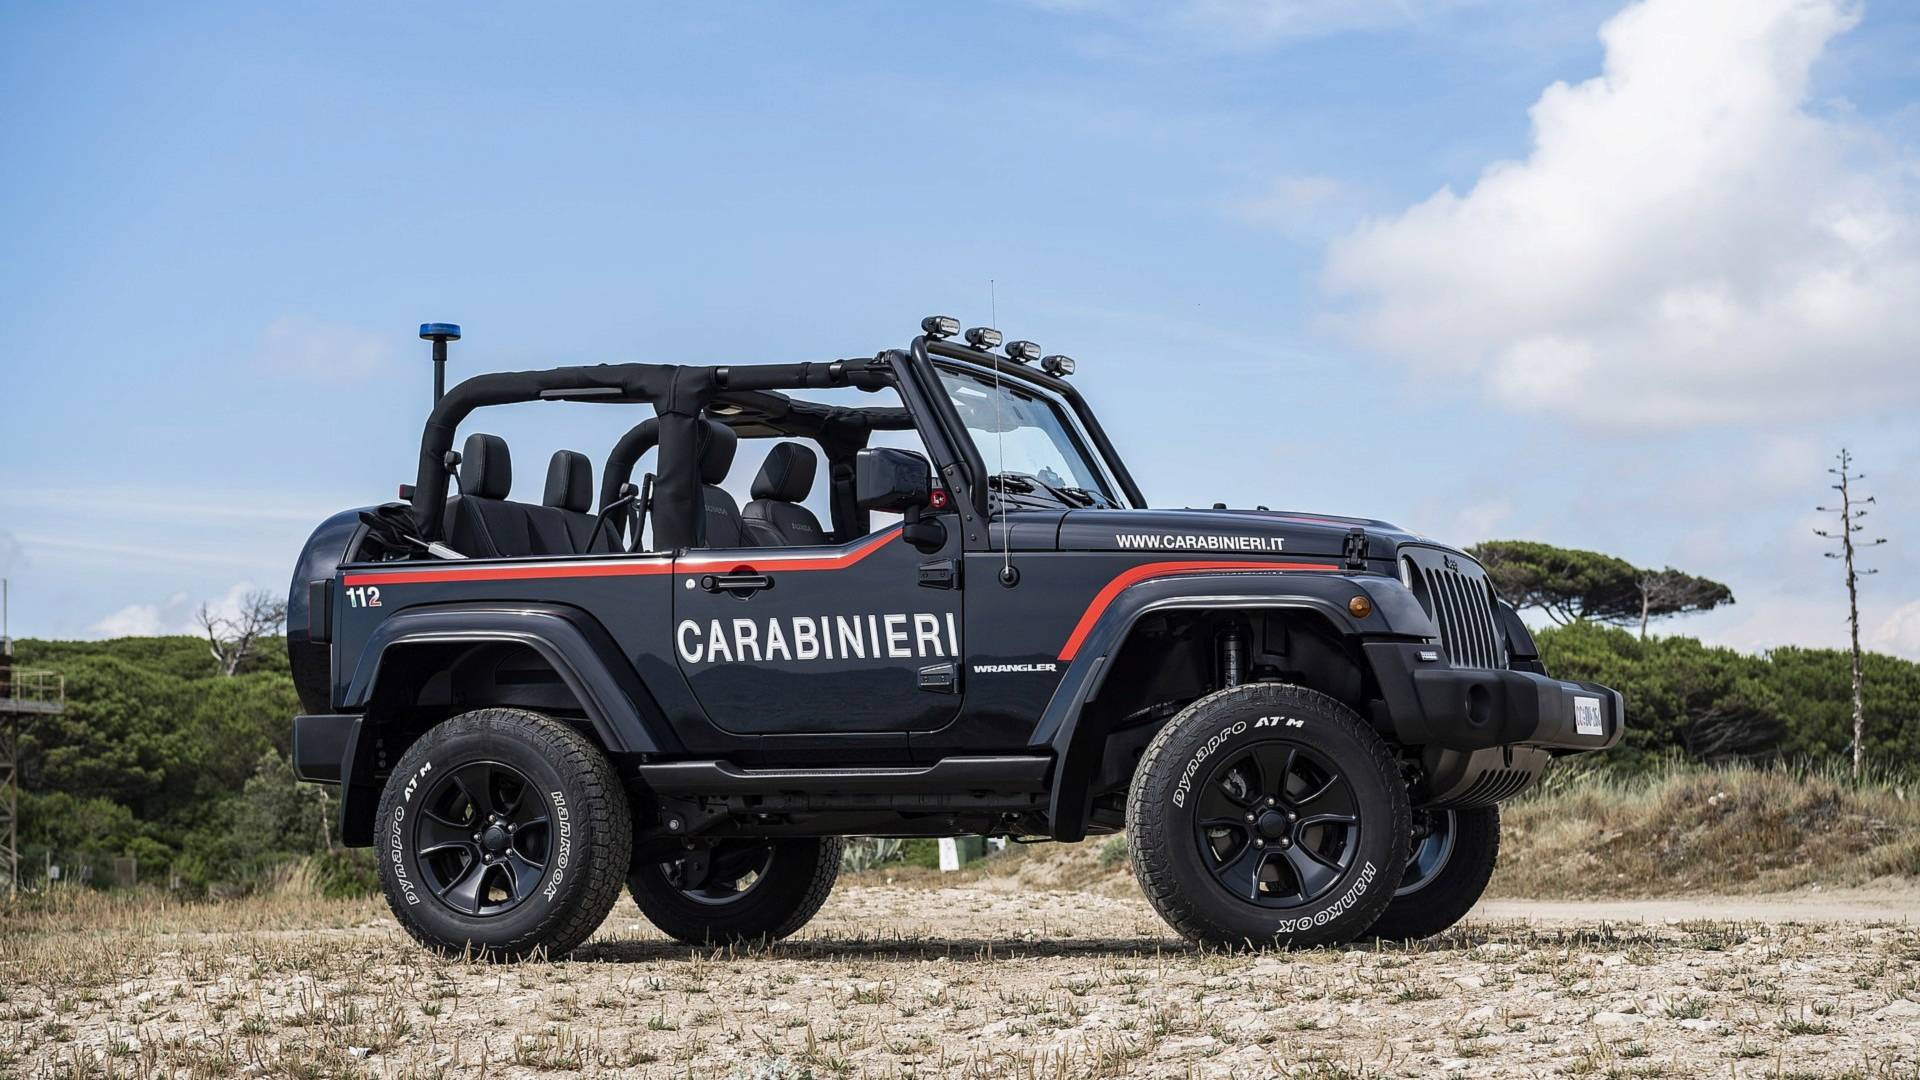 Italian Police Keep Beaches Safe With This Custom Jeep Wrangler